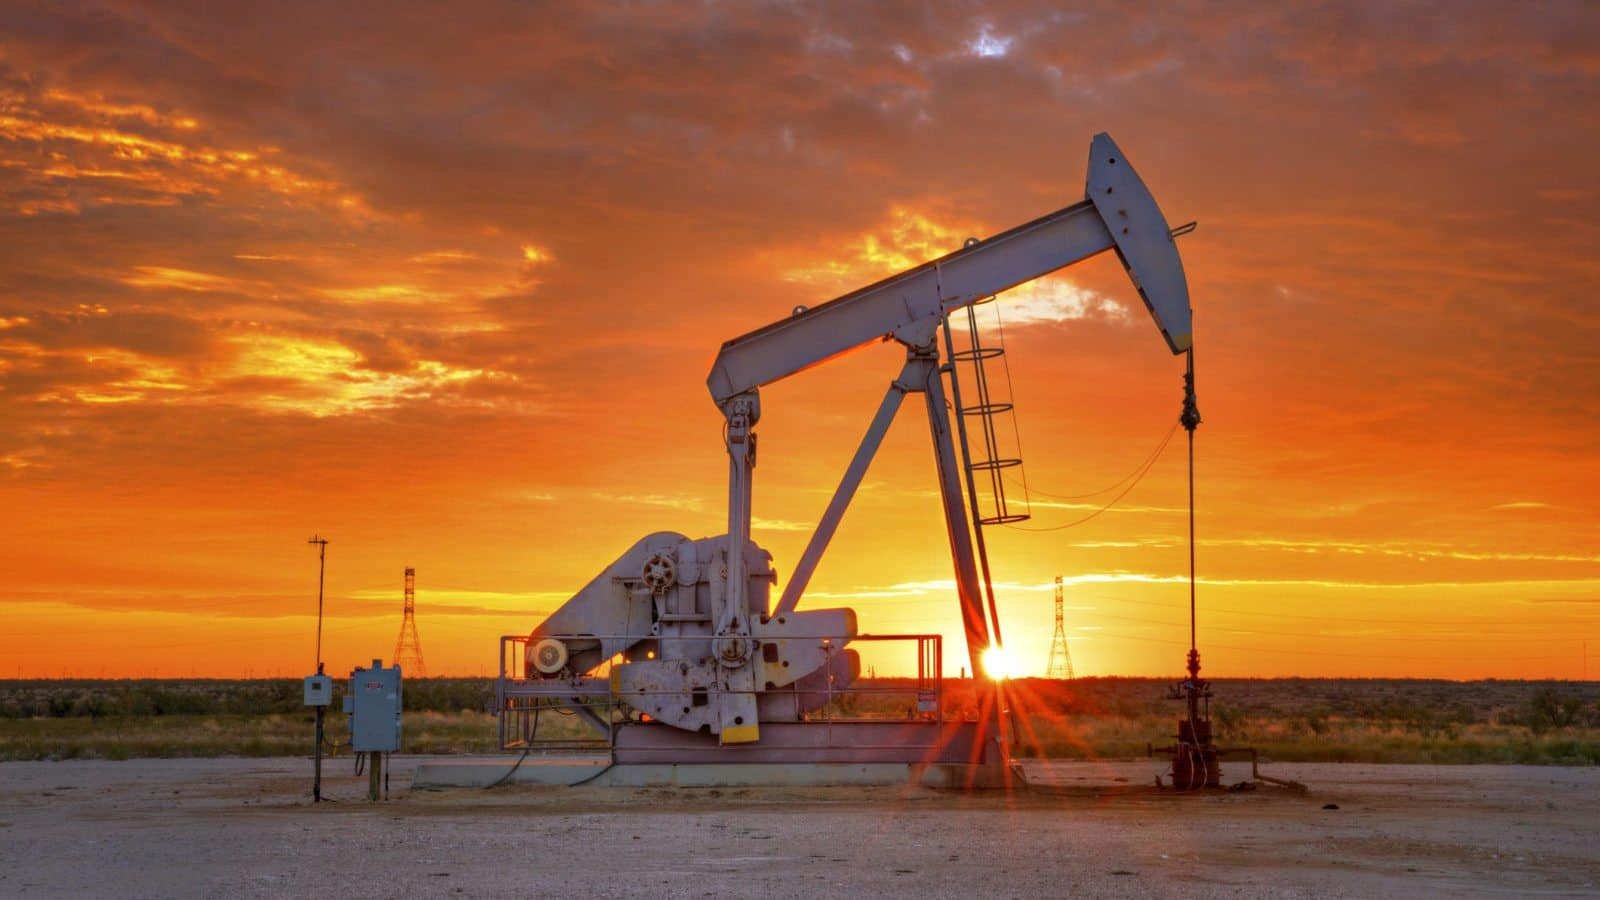 What Are the Risks of Working in a Oil Field? - Thompson Law